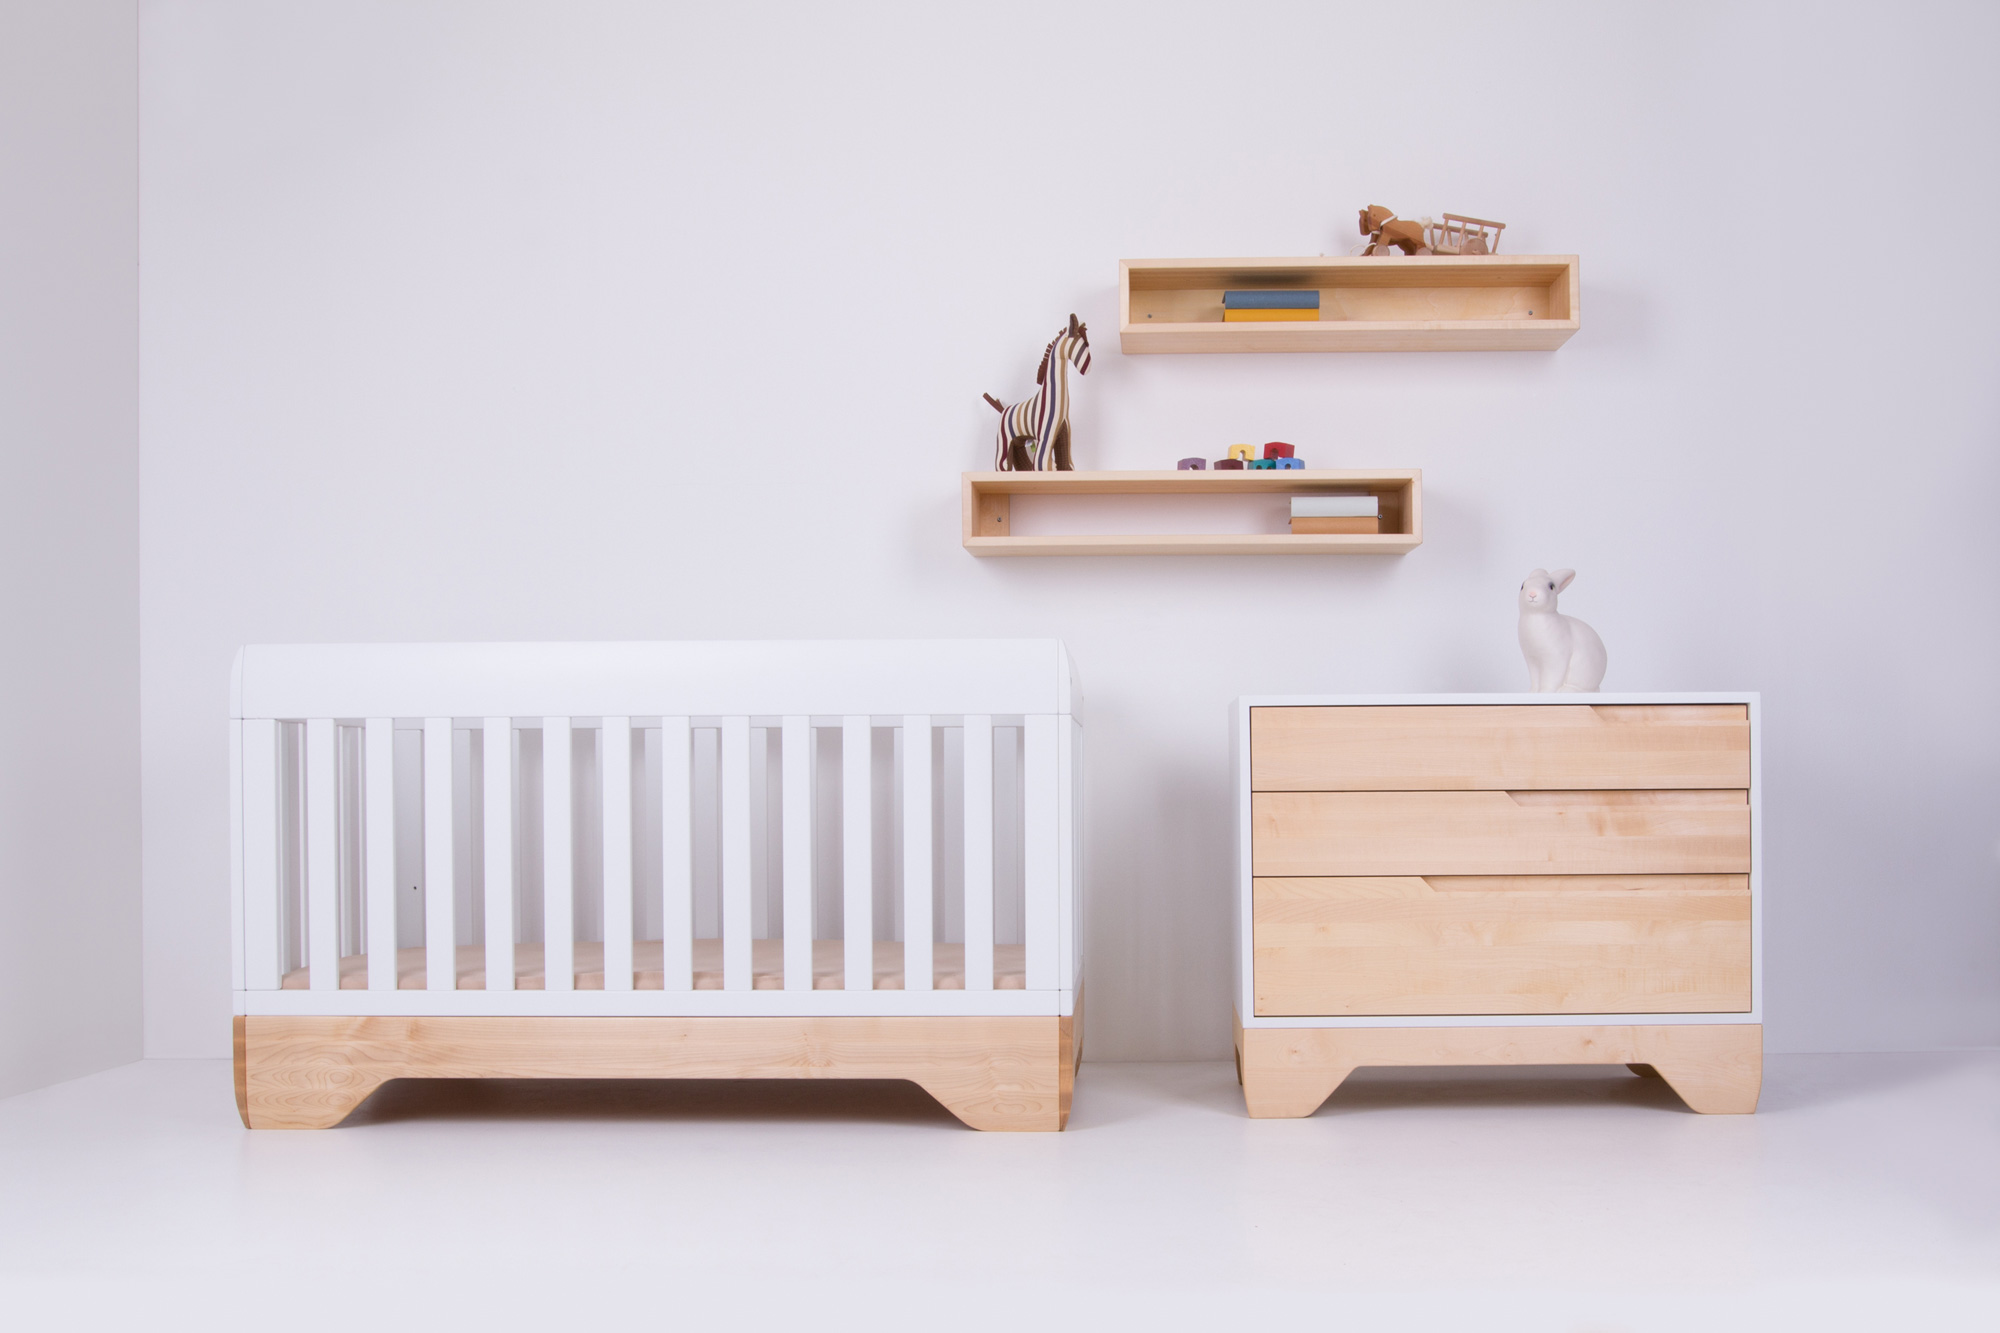 Echo Crib White, Echo Dresser Painted (White) 'in the wild'